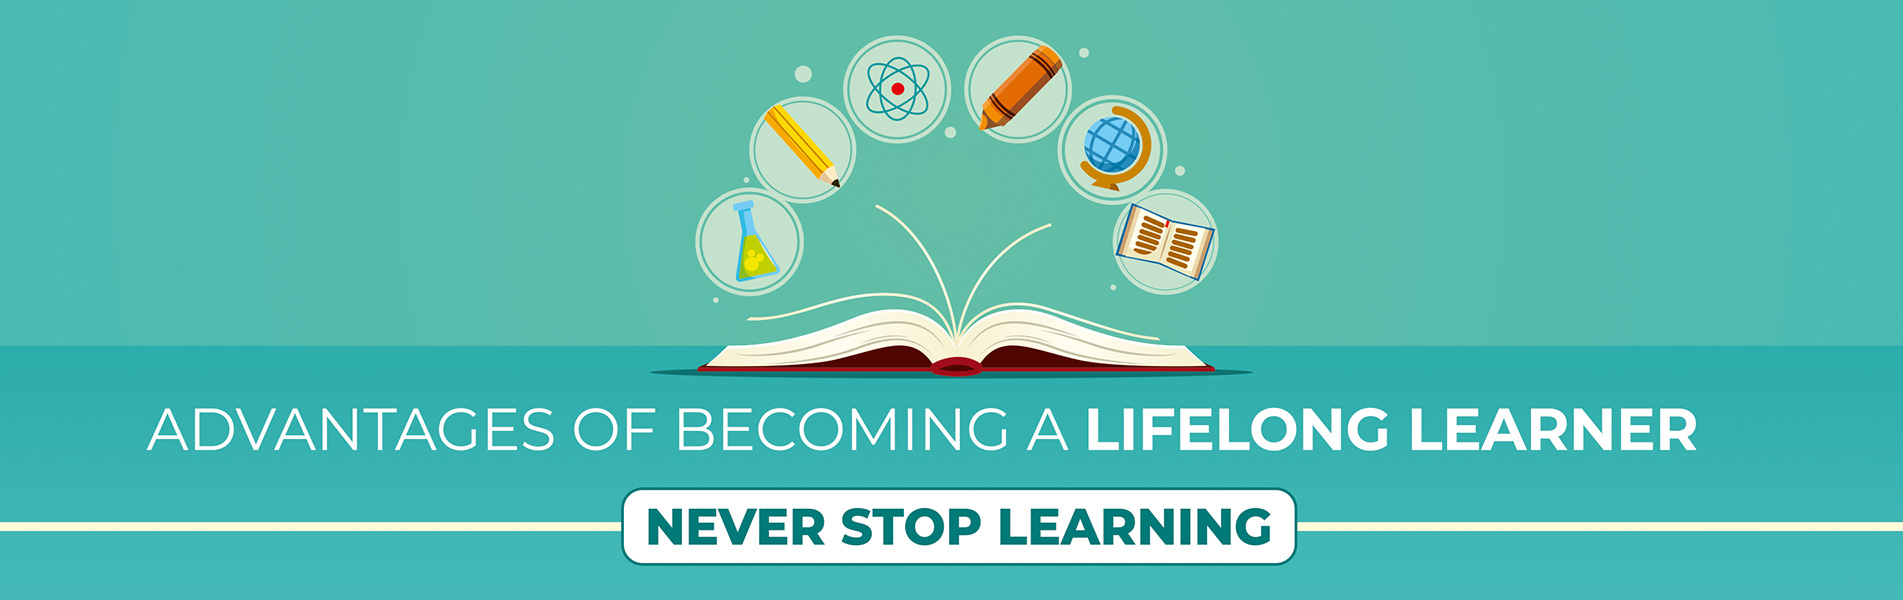 Advantages-of-becoming-a-lifelong-learner